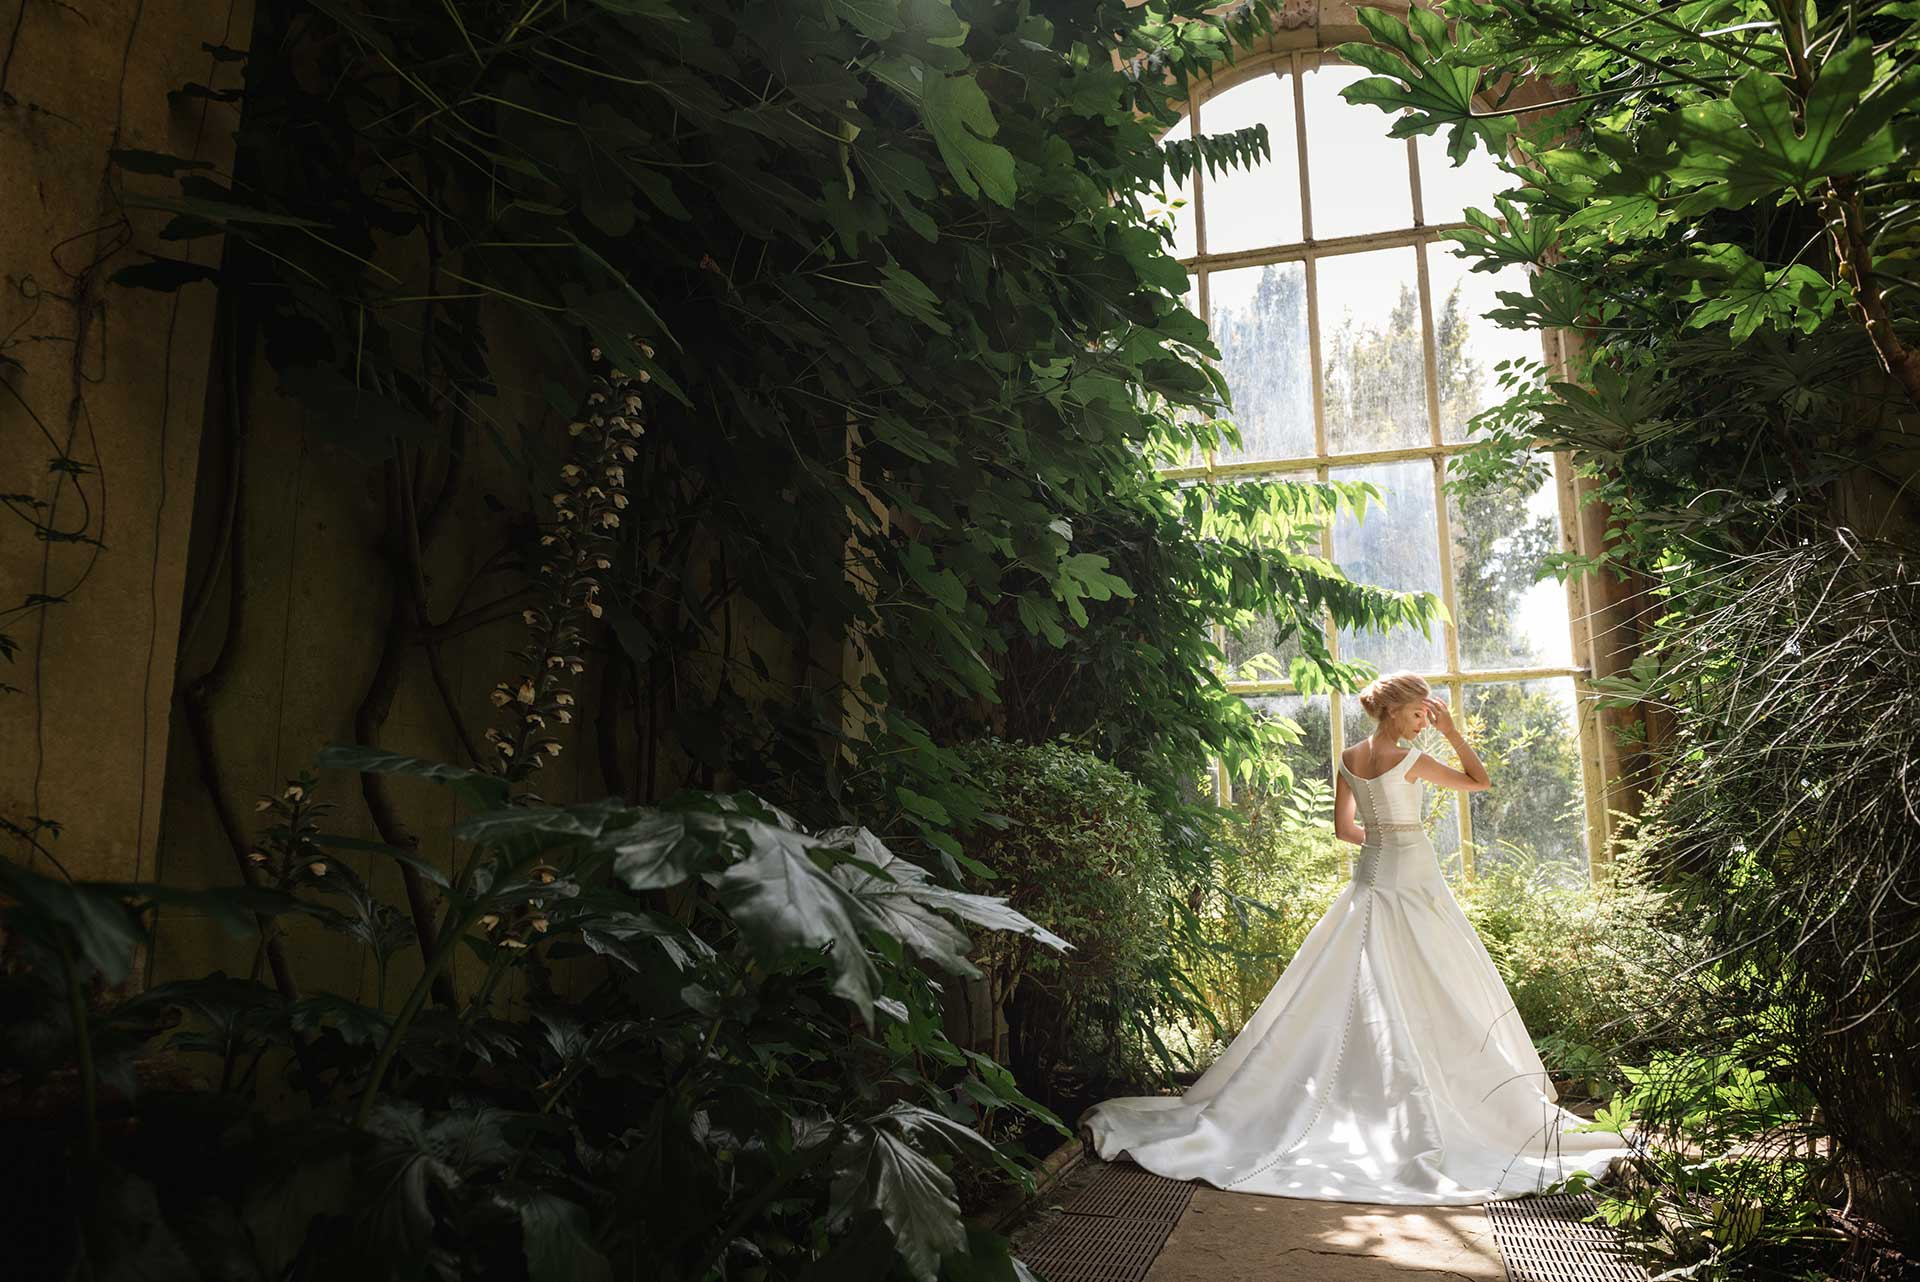 Bridal fashion shoot using the windows in the orangery at Castle Ashby Gardens